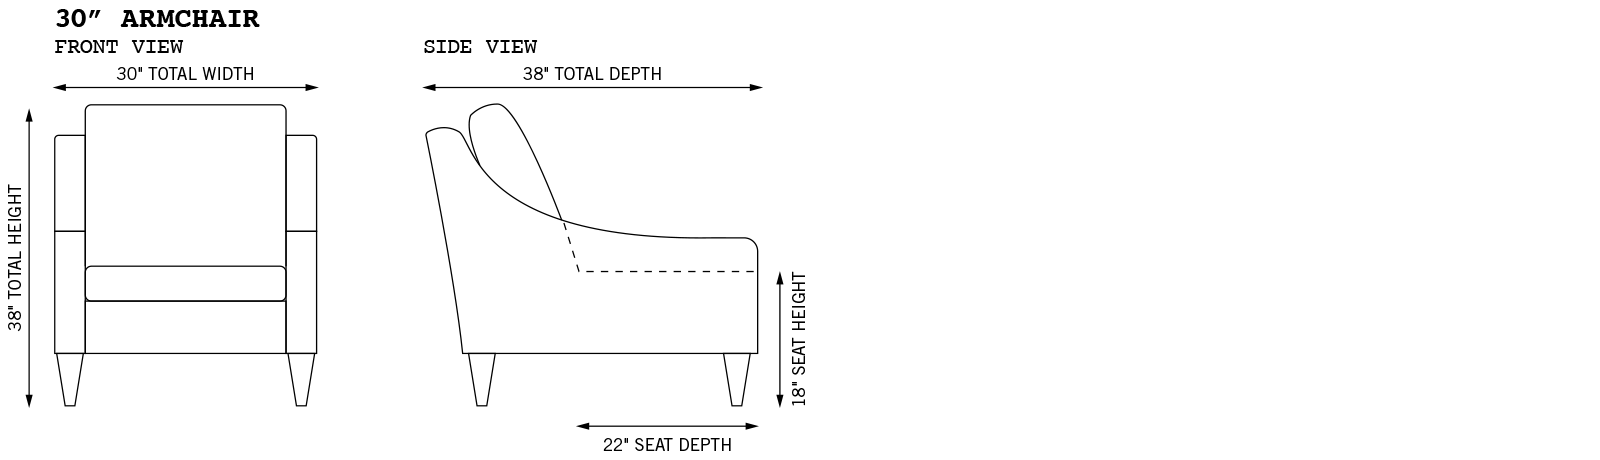 Average Arm Chair Dimensions